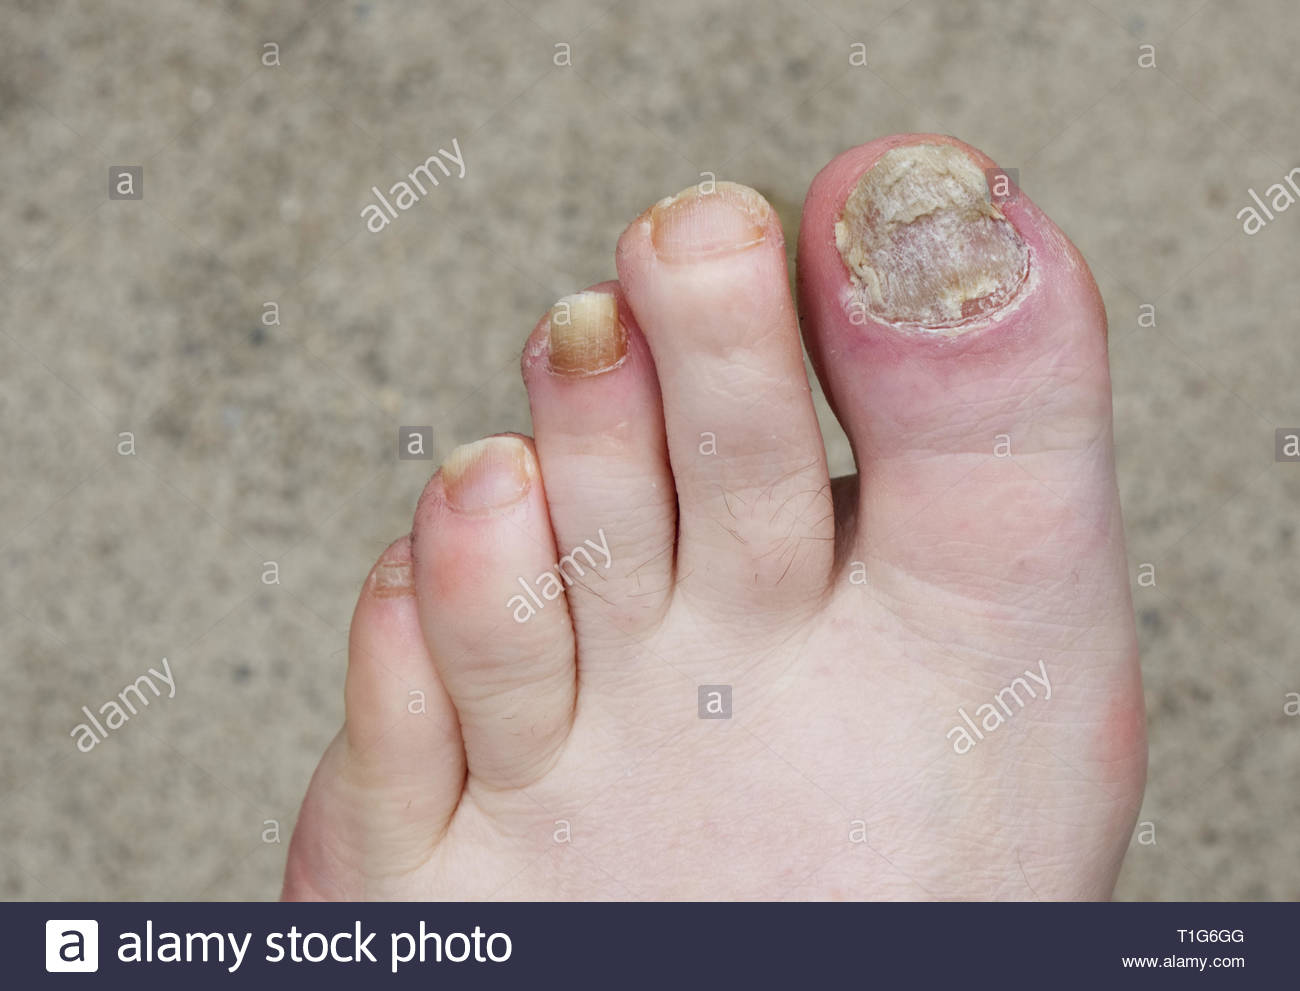 Nails badly infected with nail fungus on a white male foot Stock ...